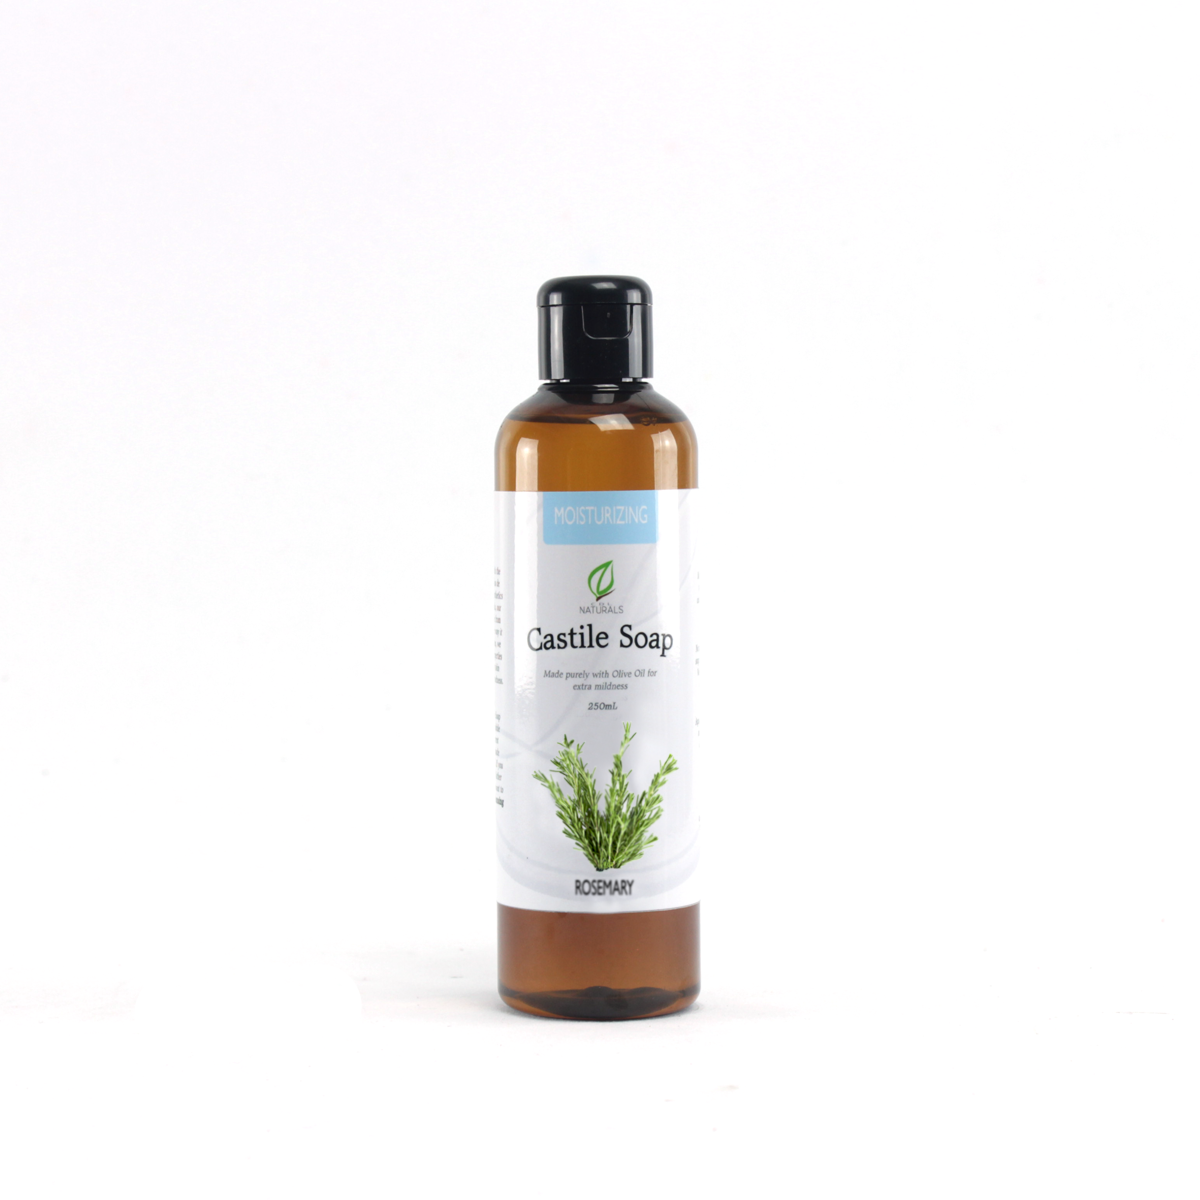 Rosemary Moisturizing Castile Soap